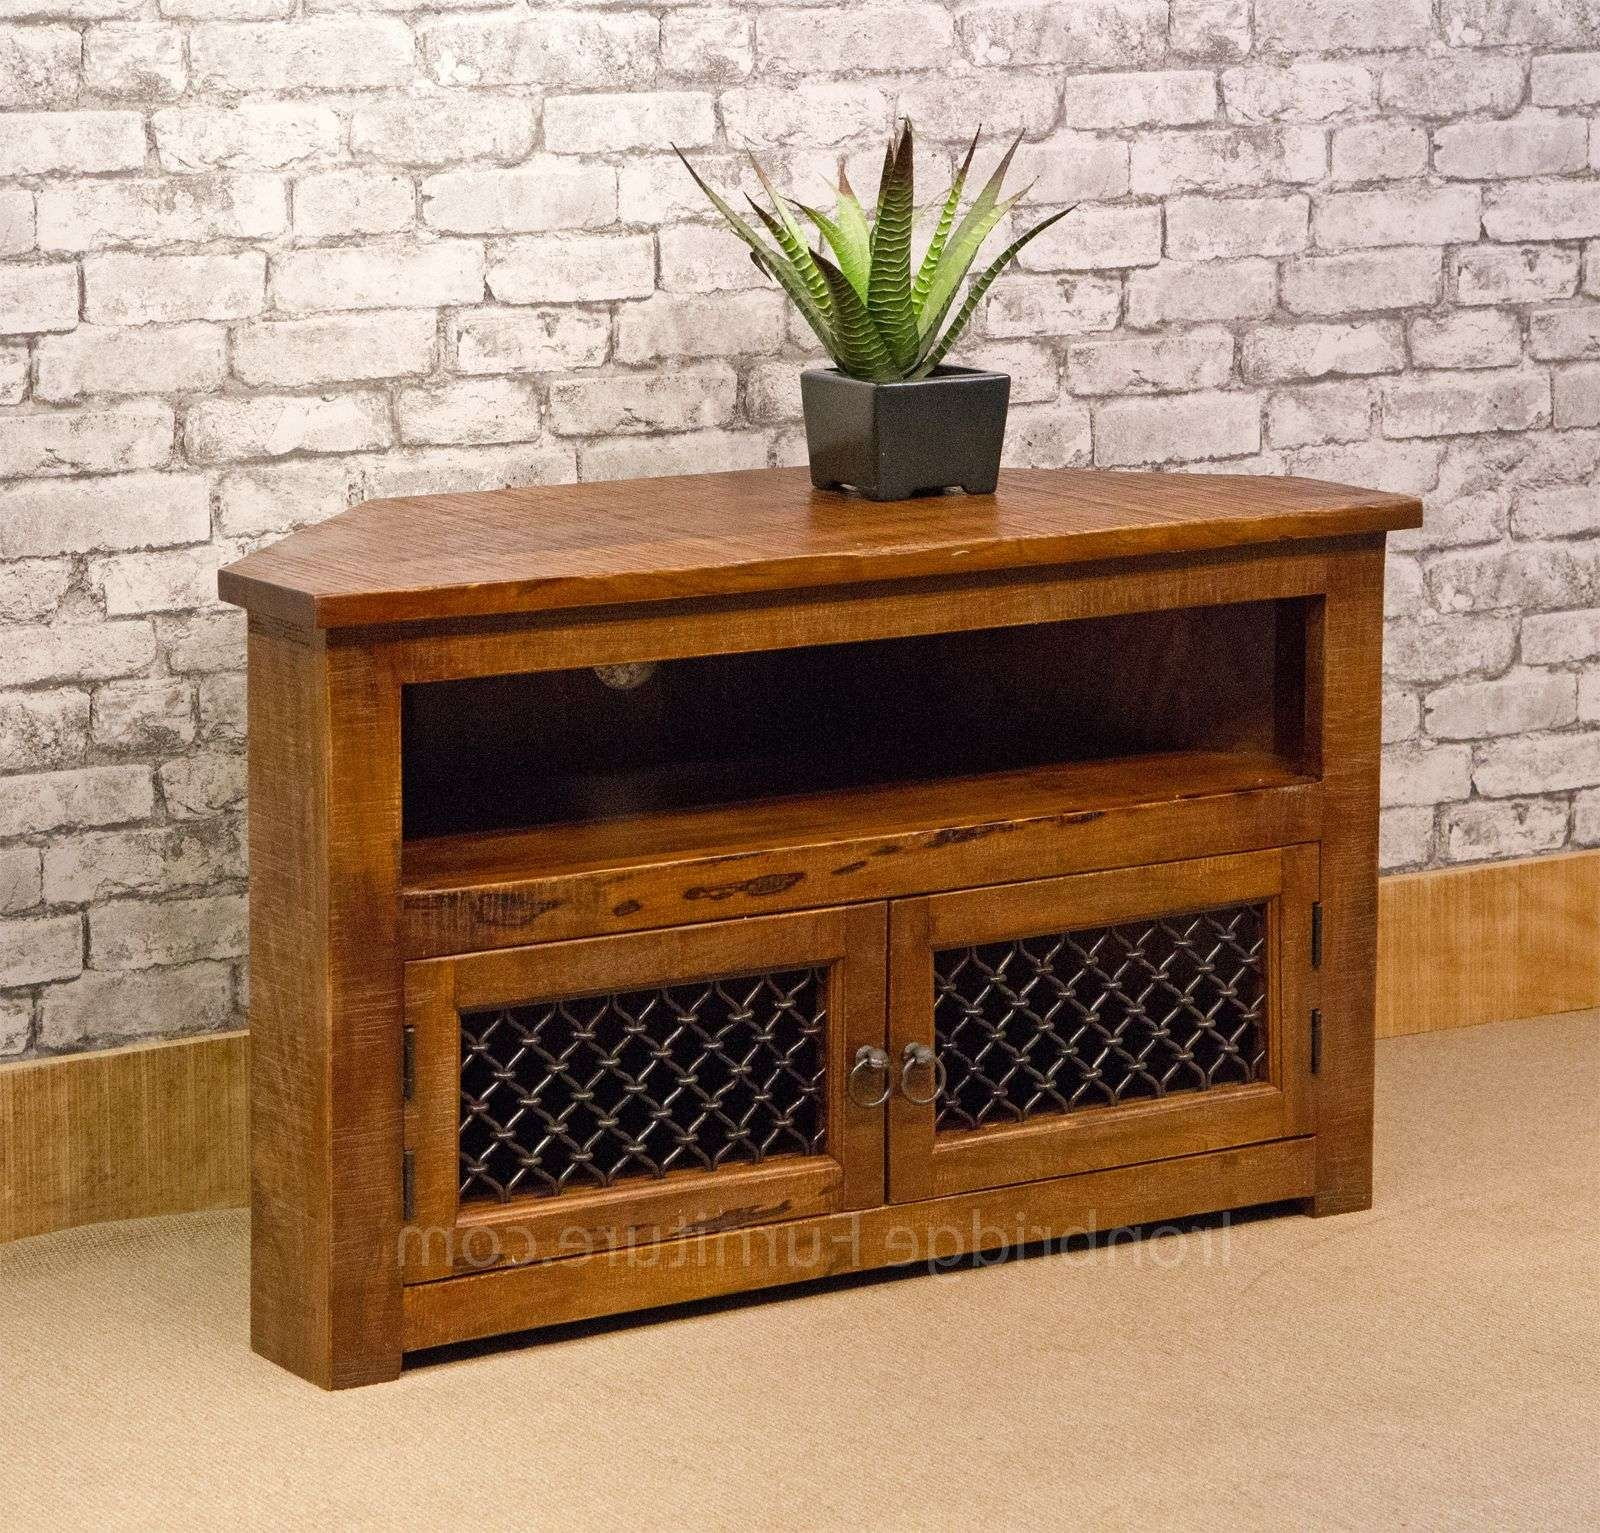 Rf 13 Jali Rustic Farm Corner Tv Stand 100Cm Inside Tv Stands 100Cm Wide (View 2 of 15)